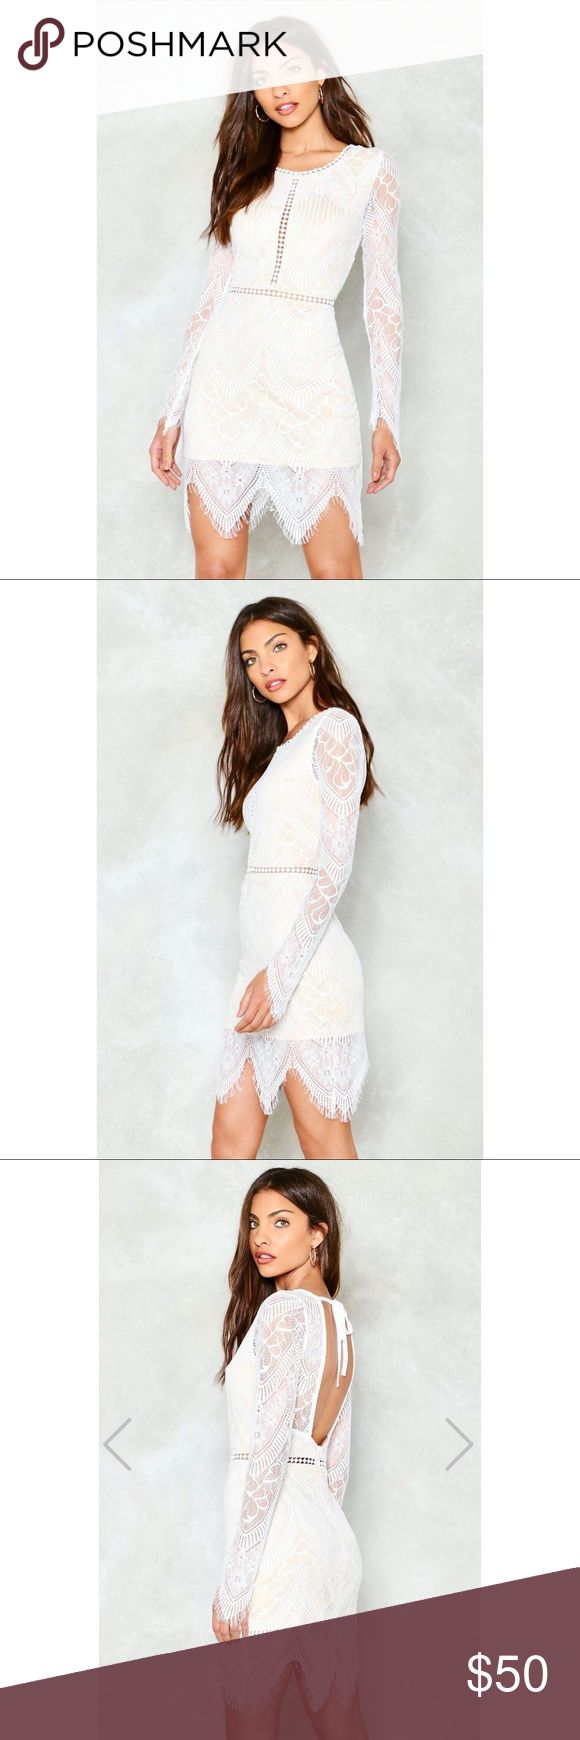 Nast Gal White Lace Mini Dress Nasty Gal One More Night Lace Mini Dress in white. Absolutely gorgeous dress! Scoop neck, open back, long sleeved. Very flattering. Brand new! Runs slightly small. Nasty Gal Dresses